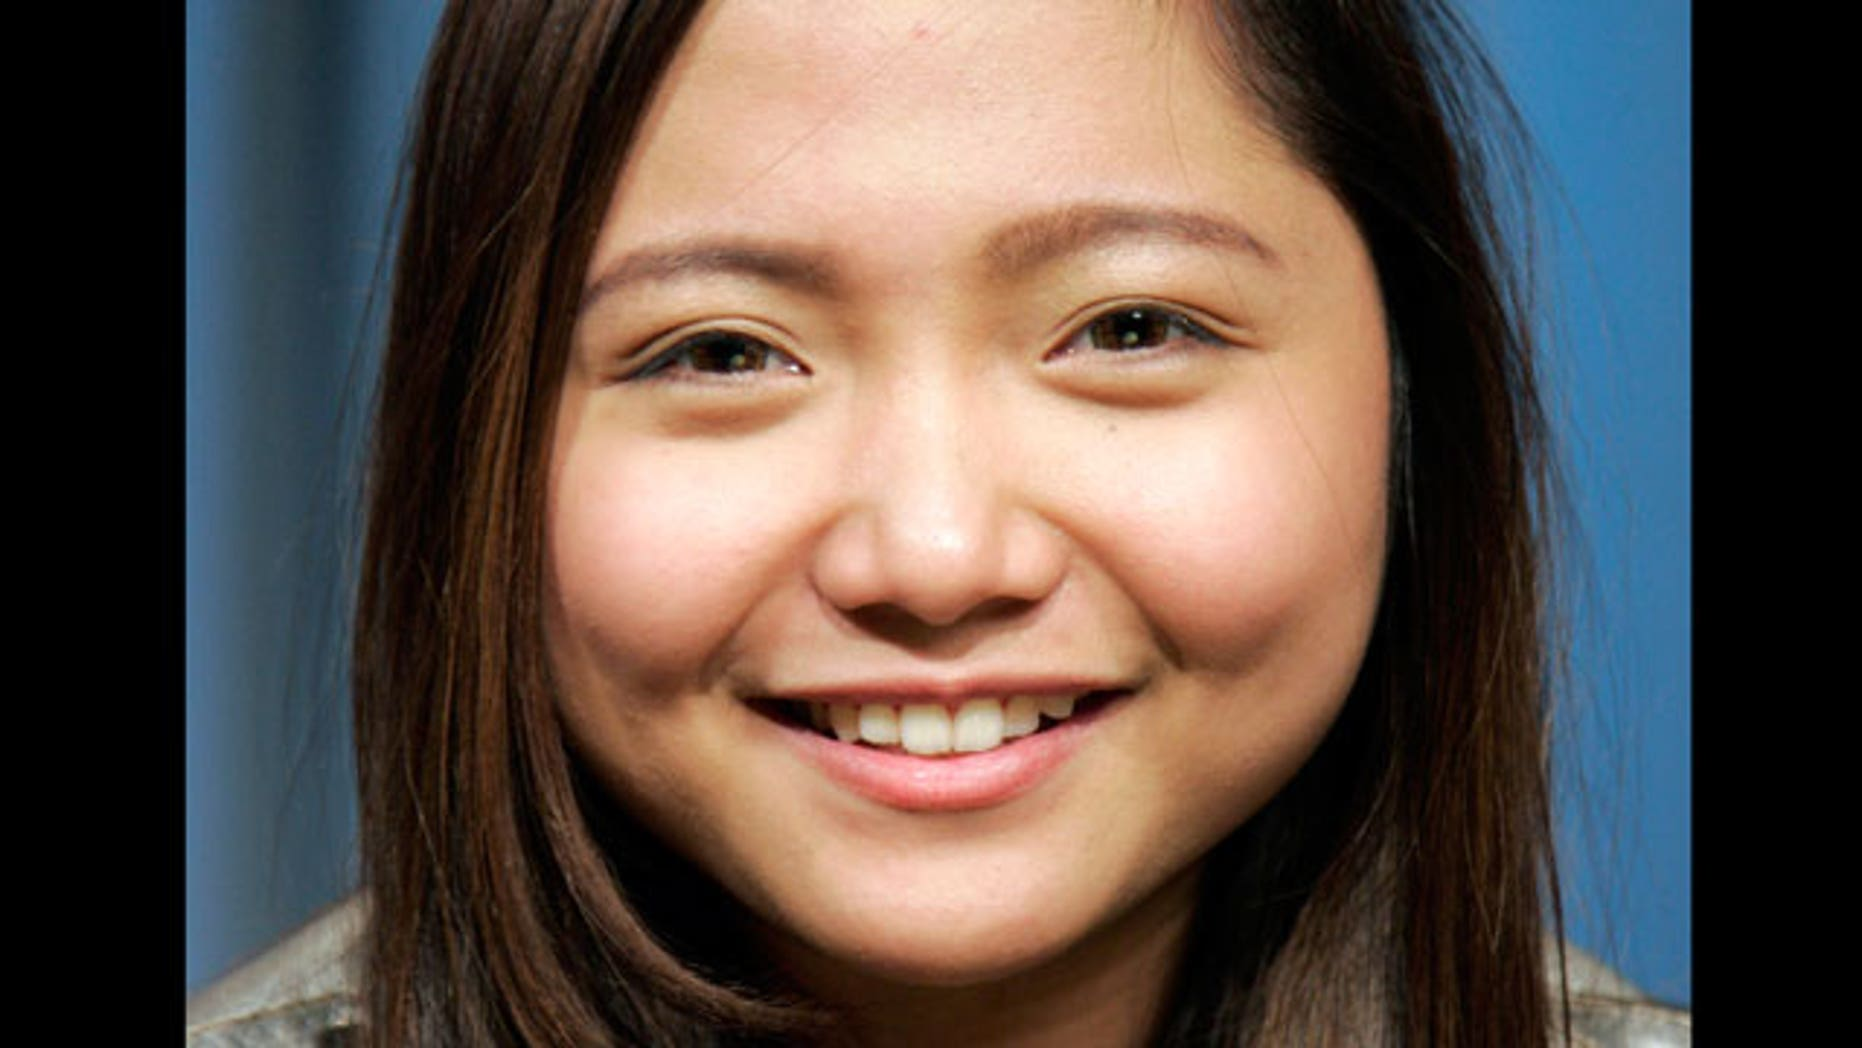 """Filipino singer Charice had botox done on her face despite being only 18 years old for her debut on the hit show """"Glee."""""""